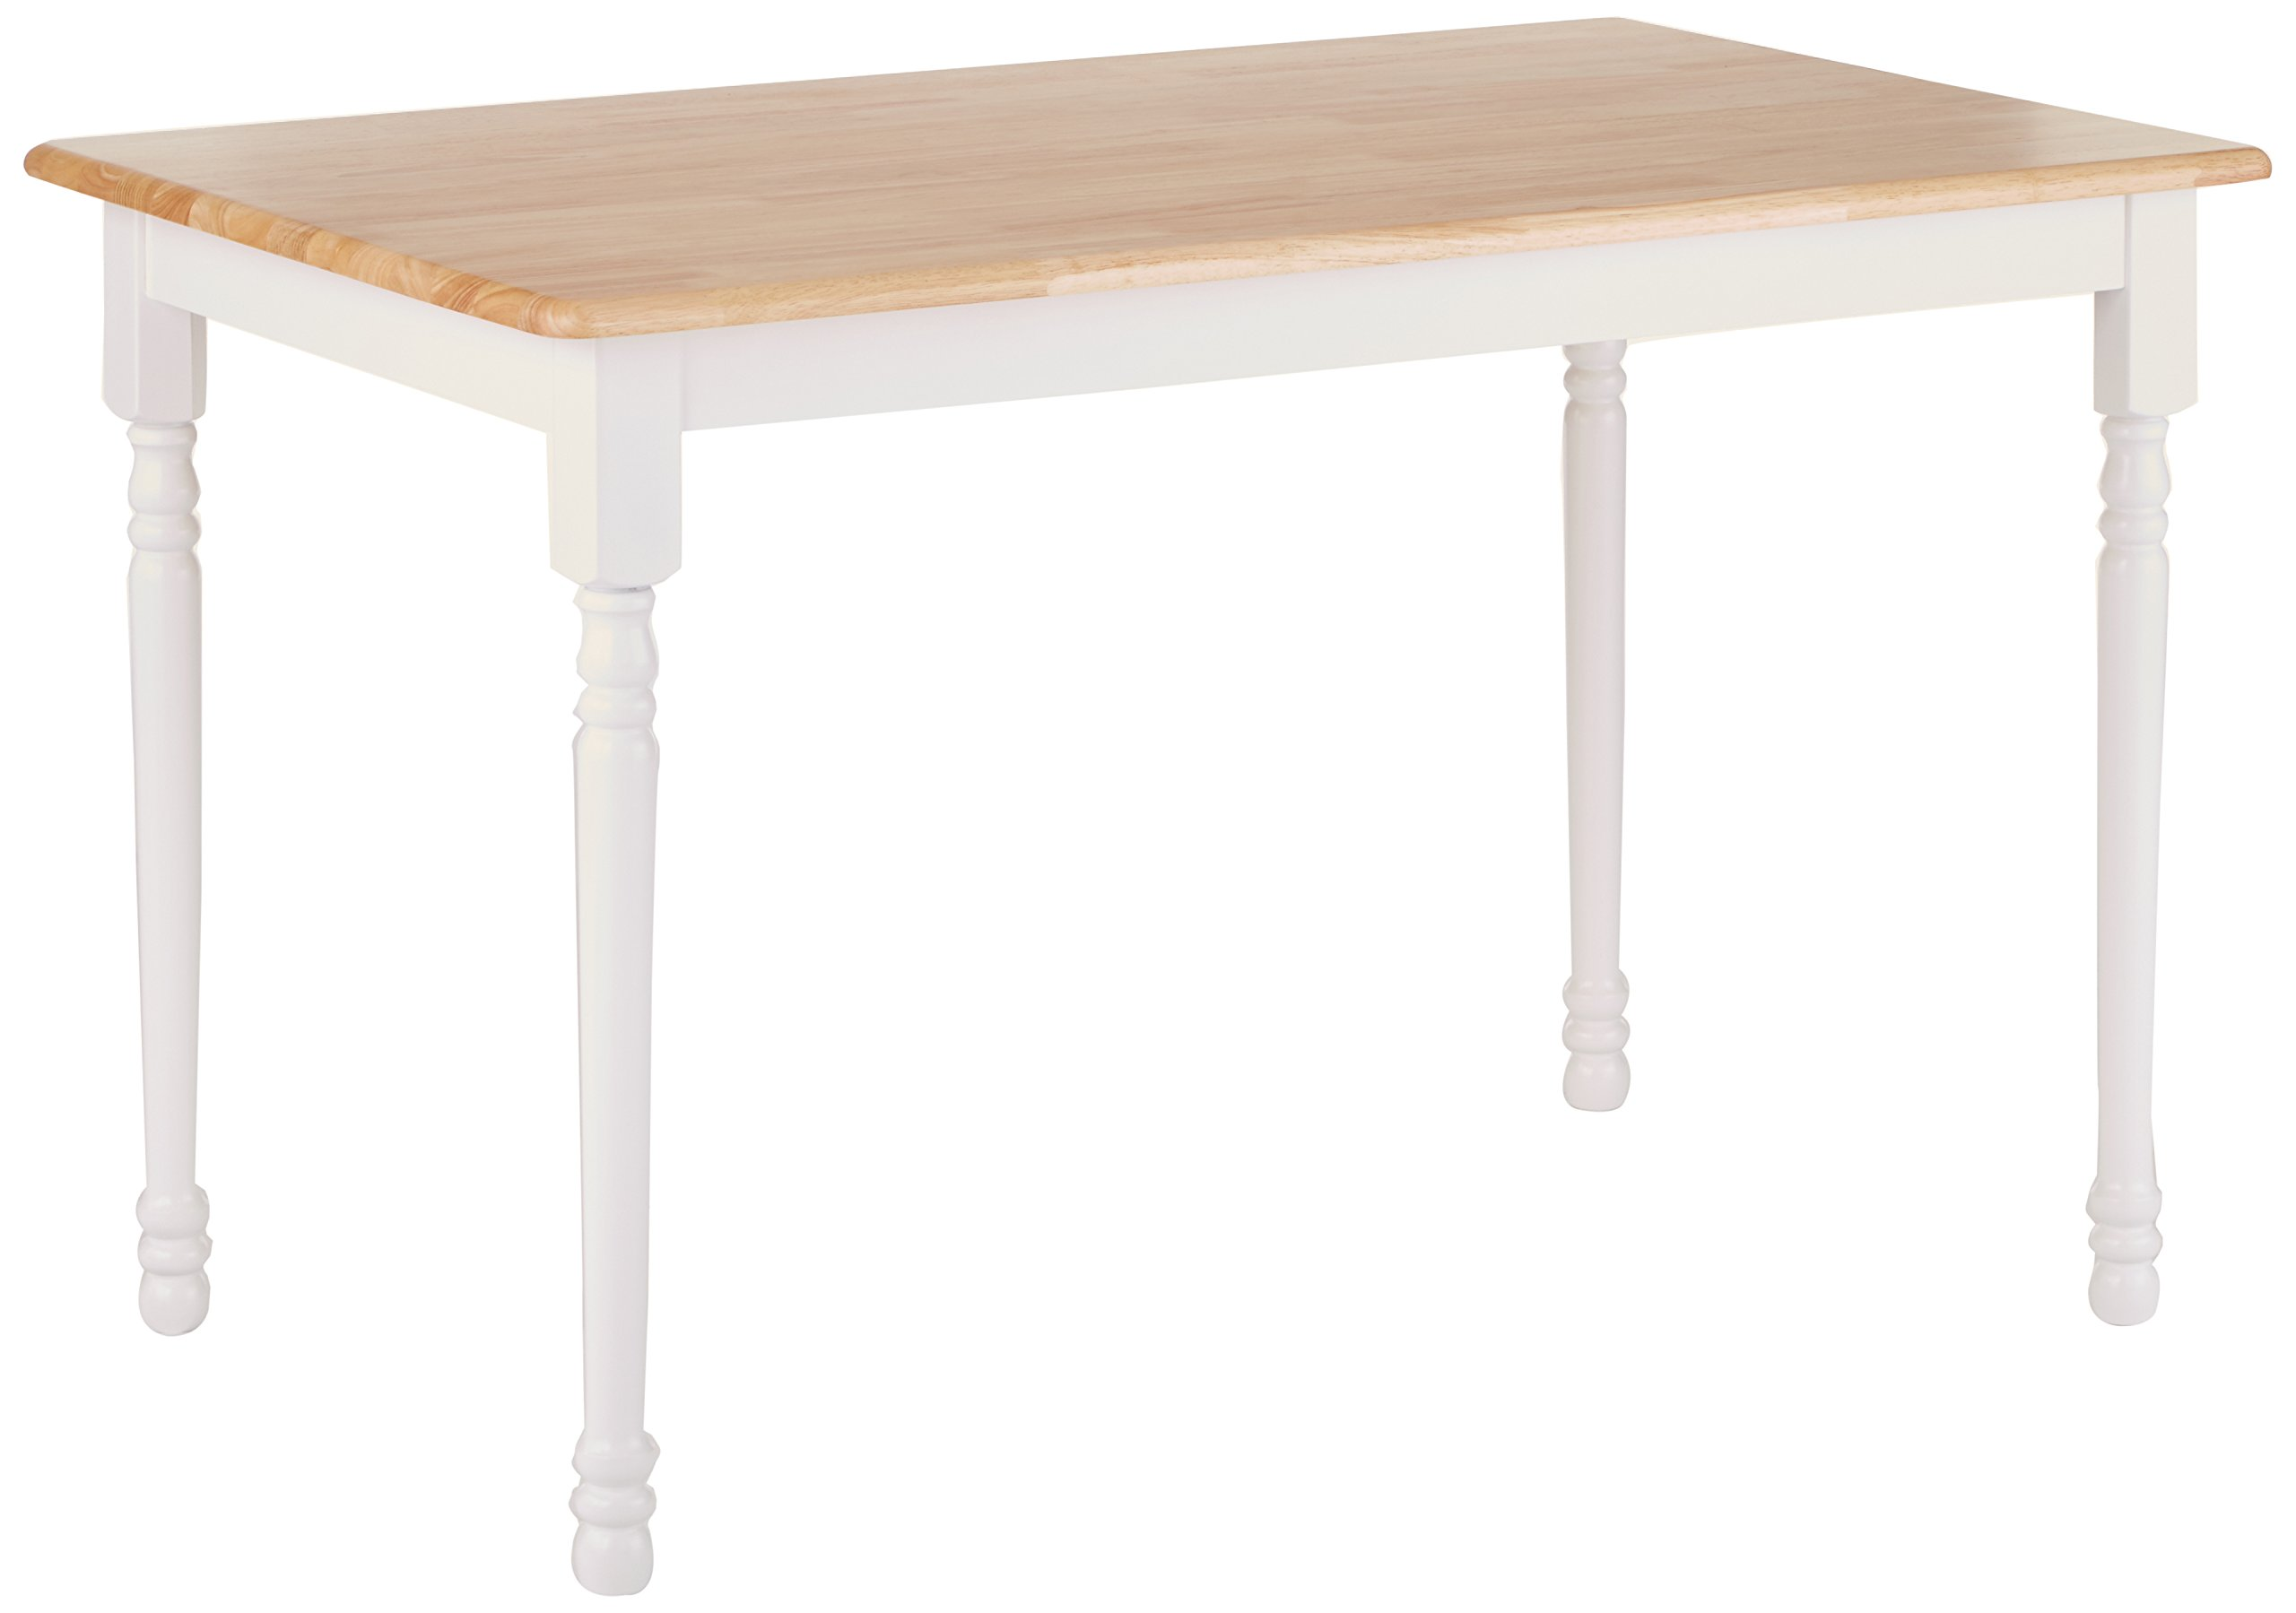 Coaster Home Furnishings  Country Farmhouse Rectangular Butcher Block Dining Table - Natural / White by Coaster Home Furnishings